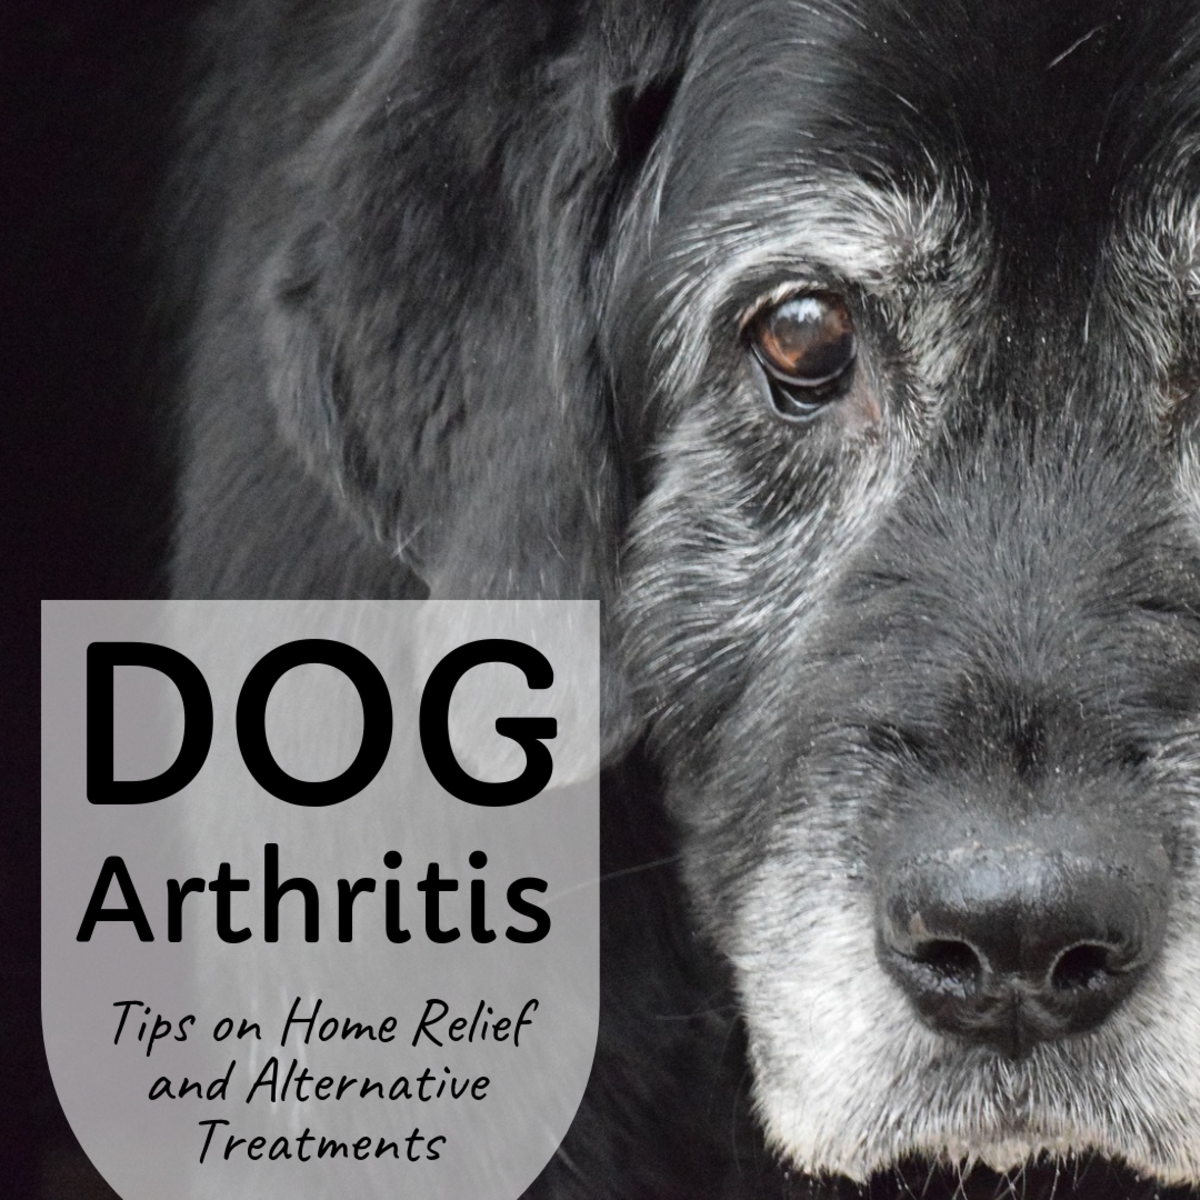 Home Remedies and Alternative Treatments for Dog Arthritis